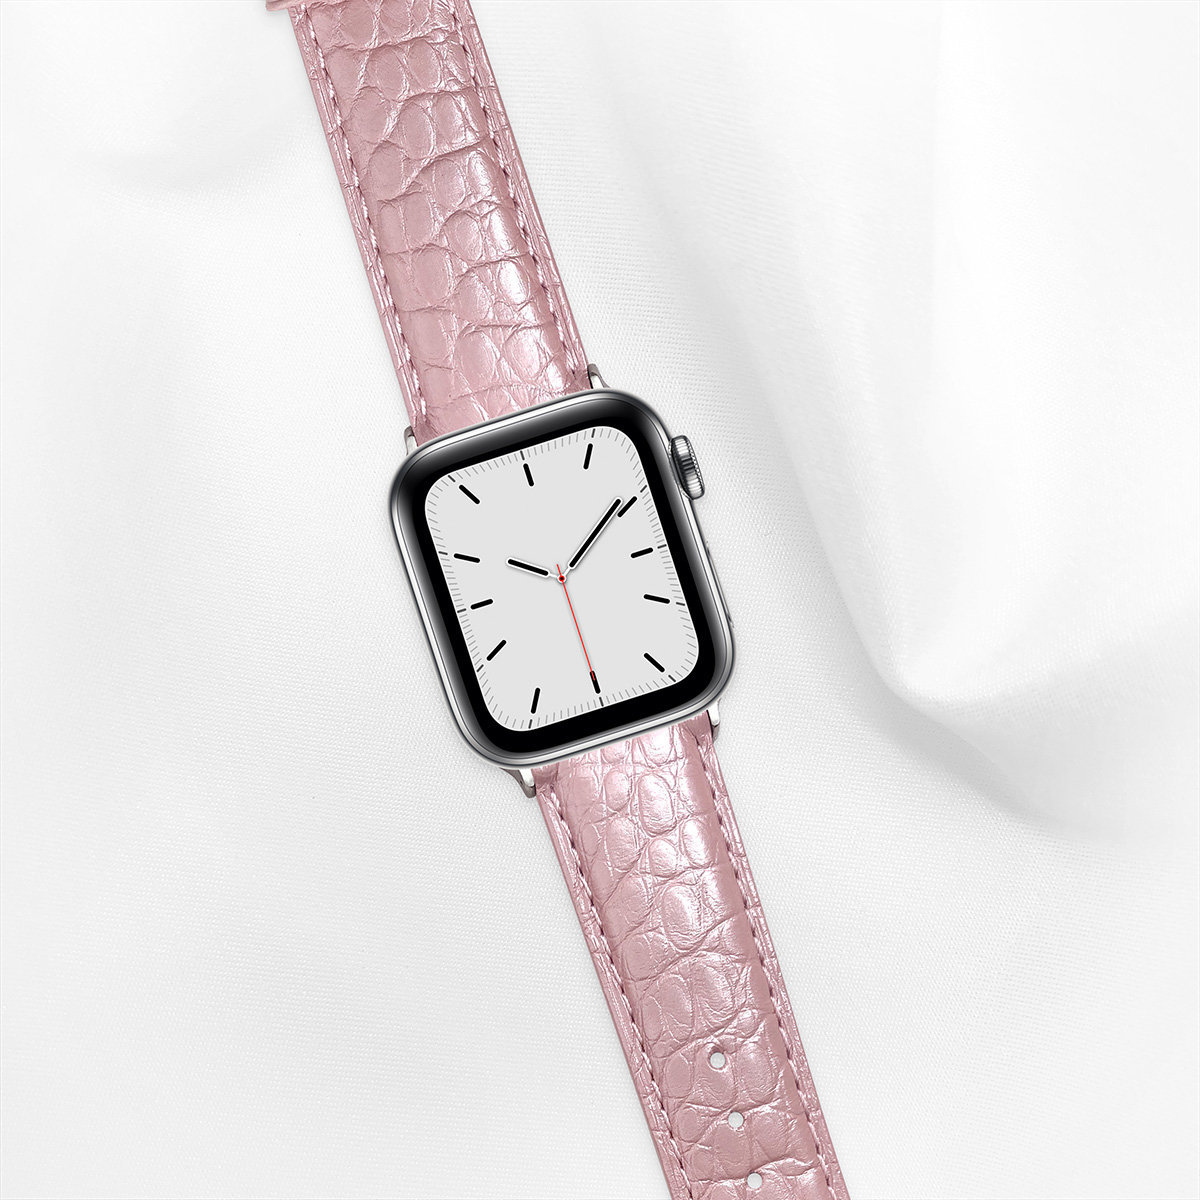 Pearl Alligator 40mm Apple Watch 5 Strap, Pearl Pink, Round Scales, for Small Casing